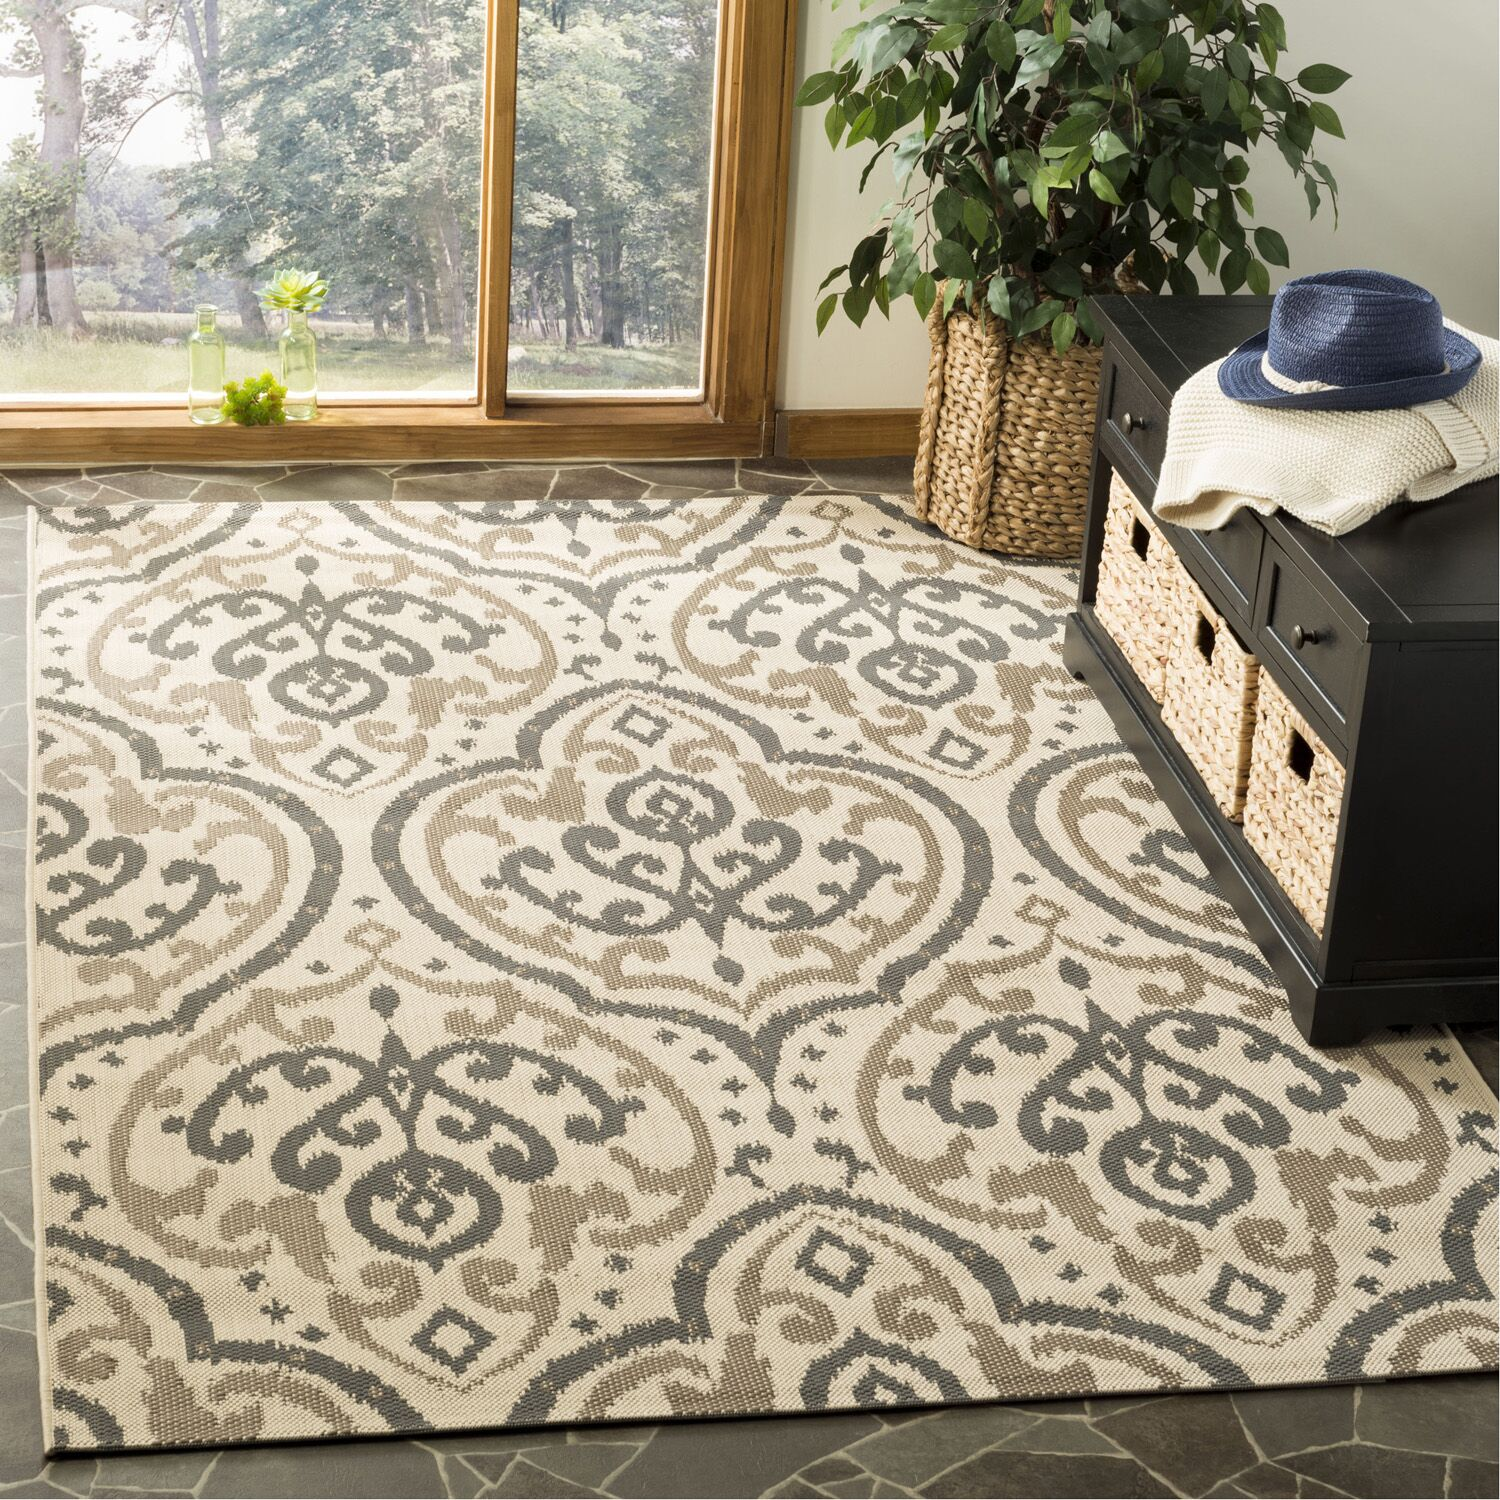 Fairview Beige/Anthracite Area Rug Rug Size: Rectangle 5'3